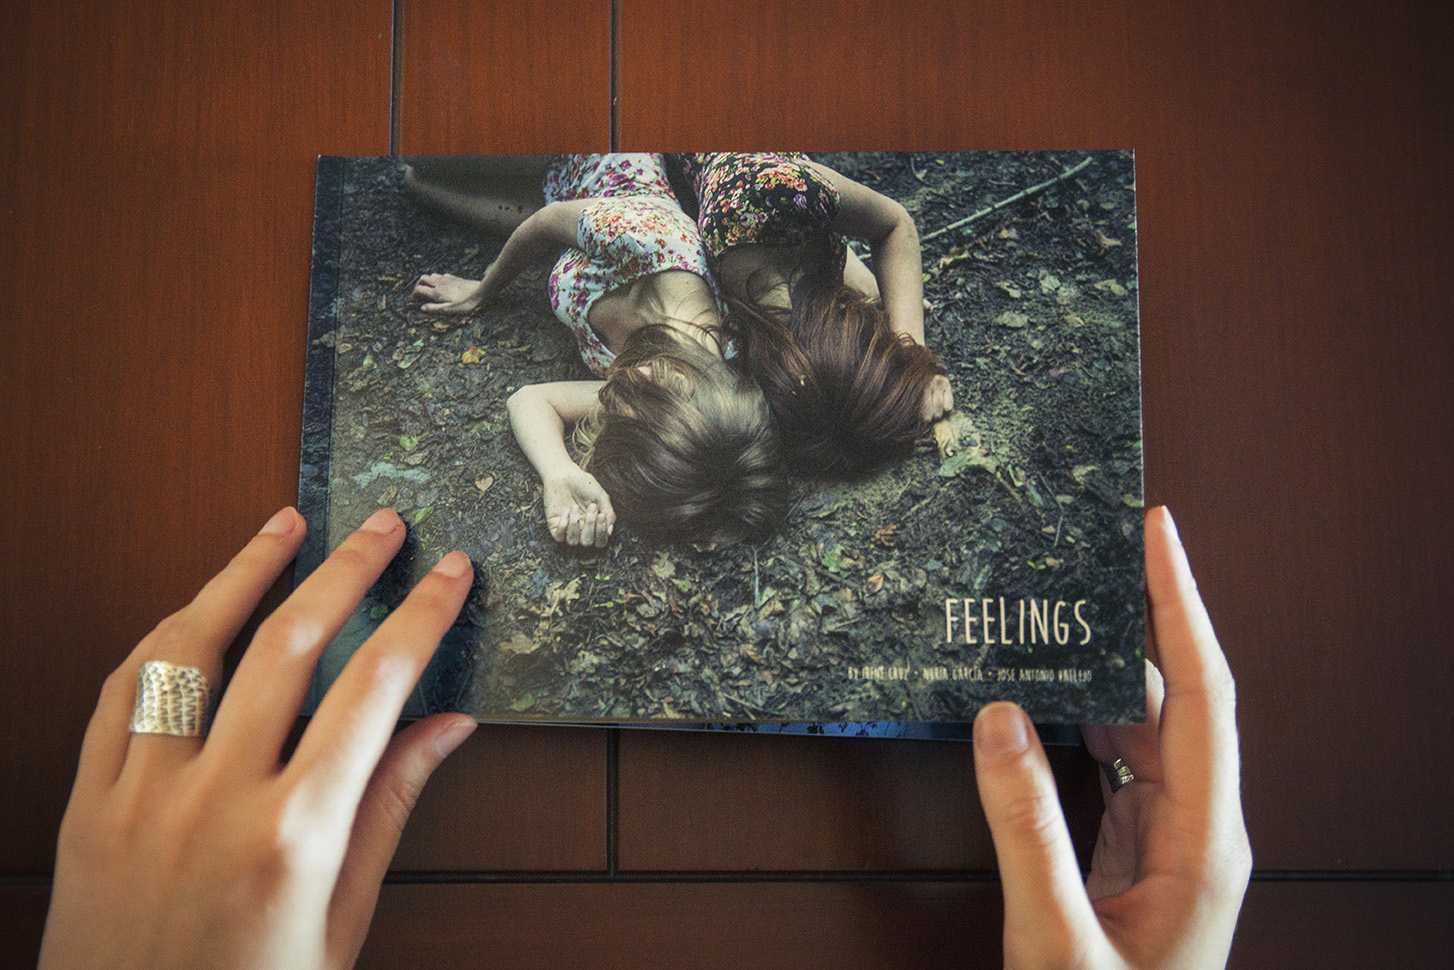 Feelings - Issue 2